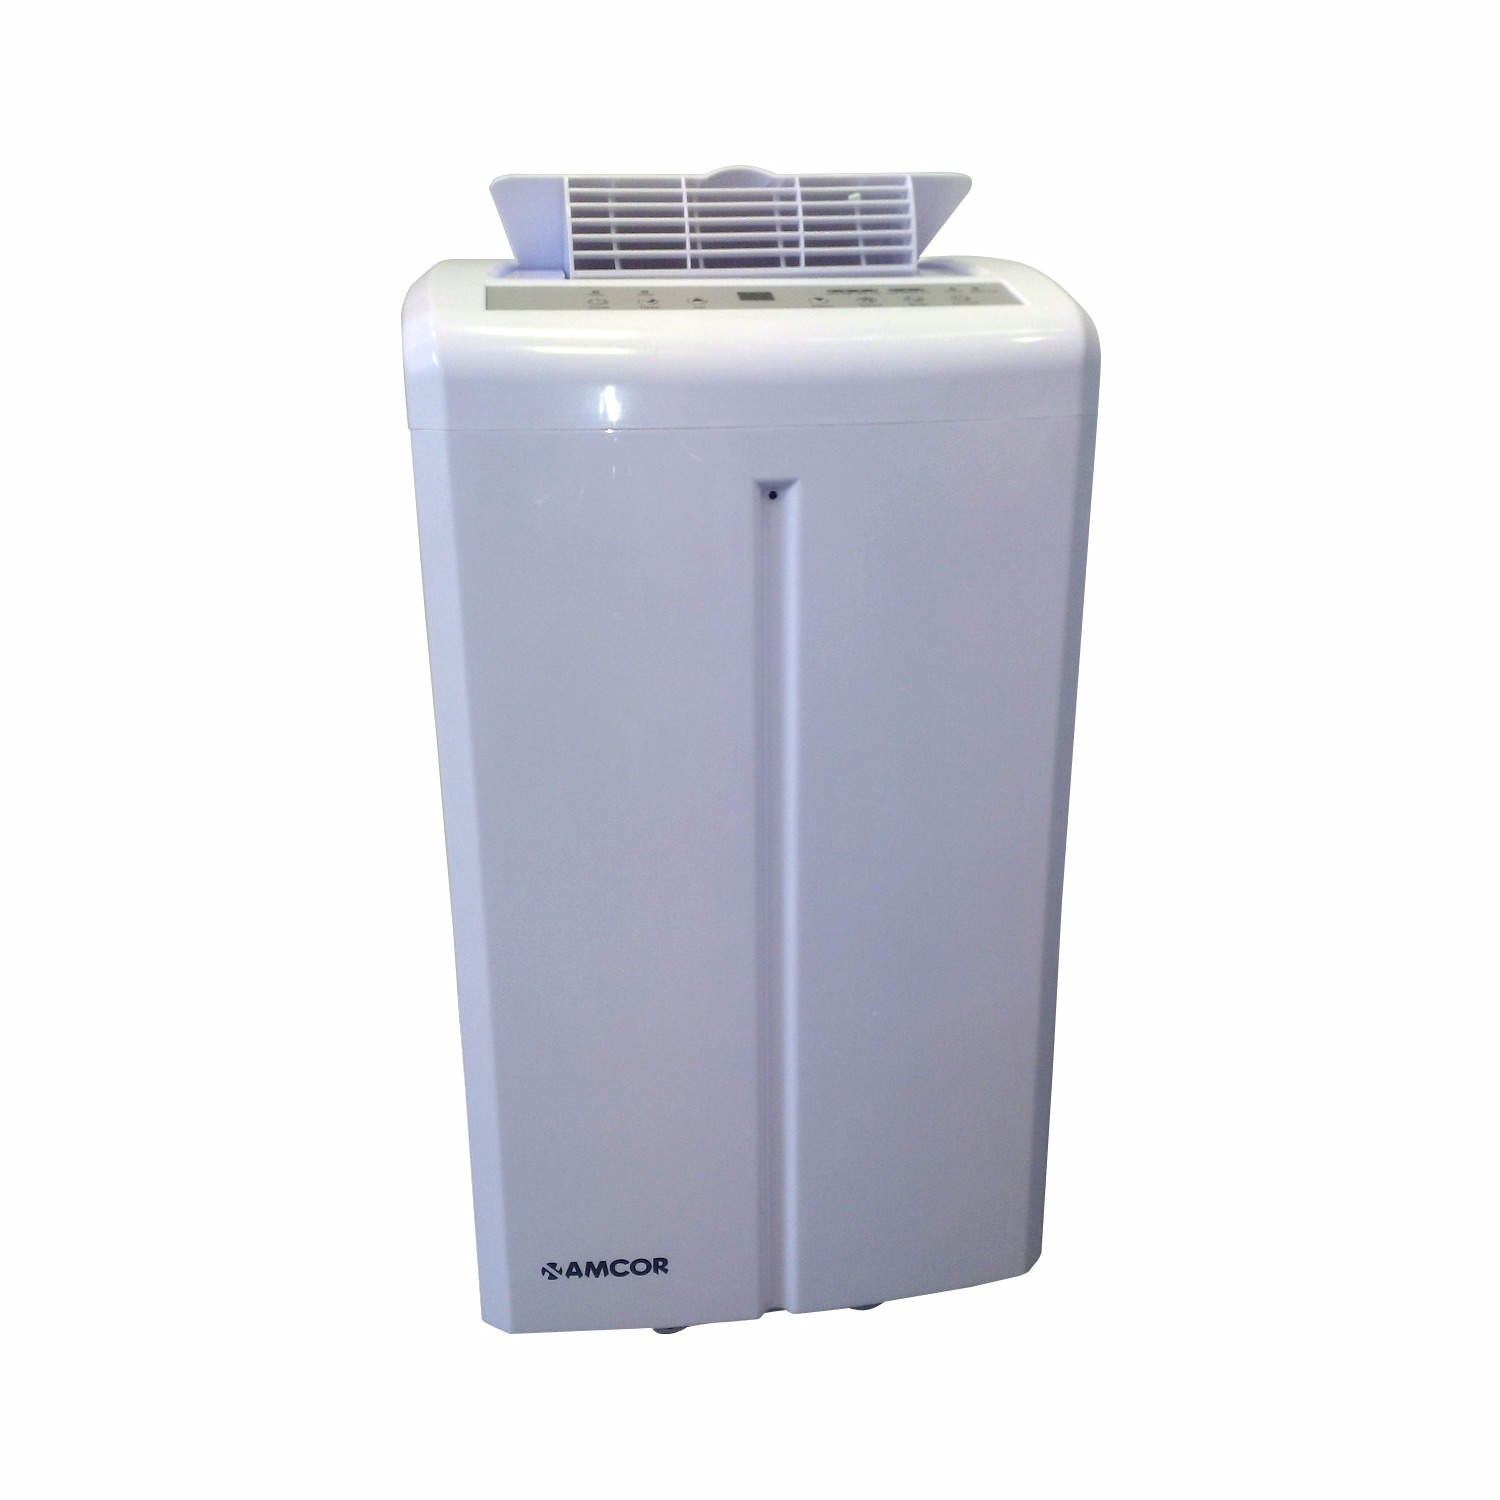 Charmant Amcor 16000 BTU Portable Air Conditioner For Rooms Up To 42 Sqm